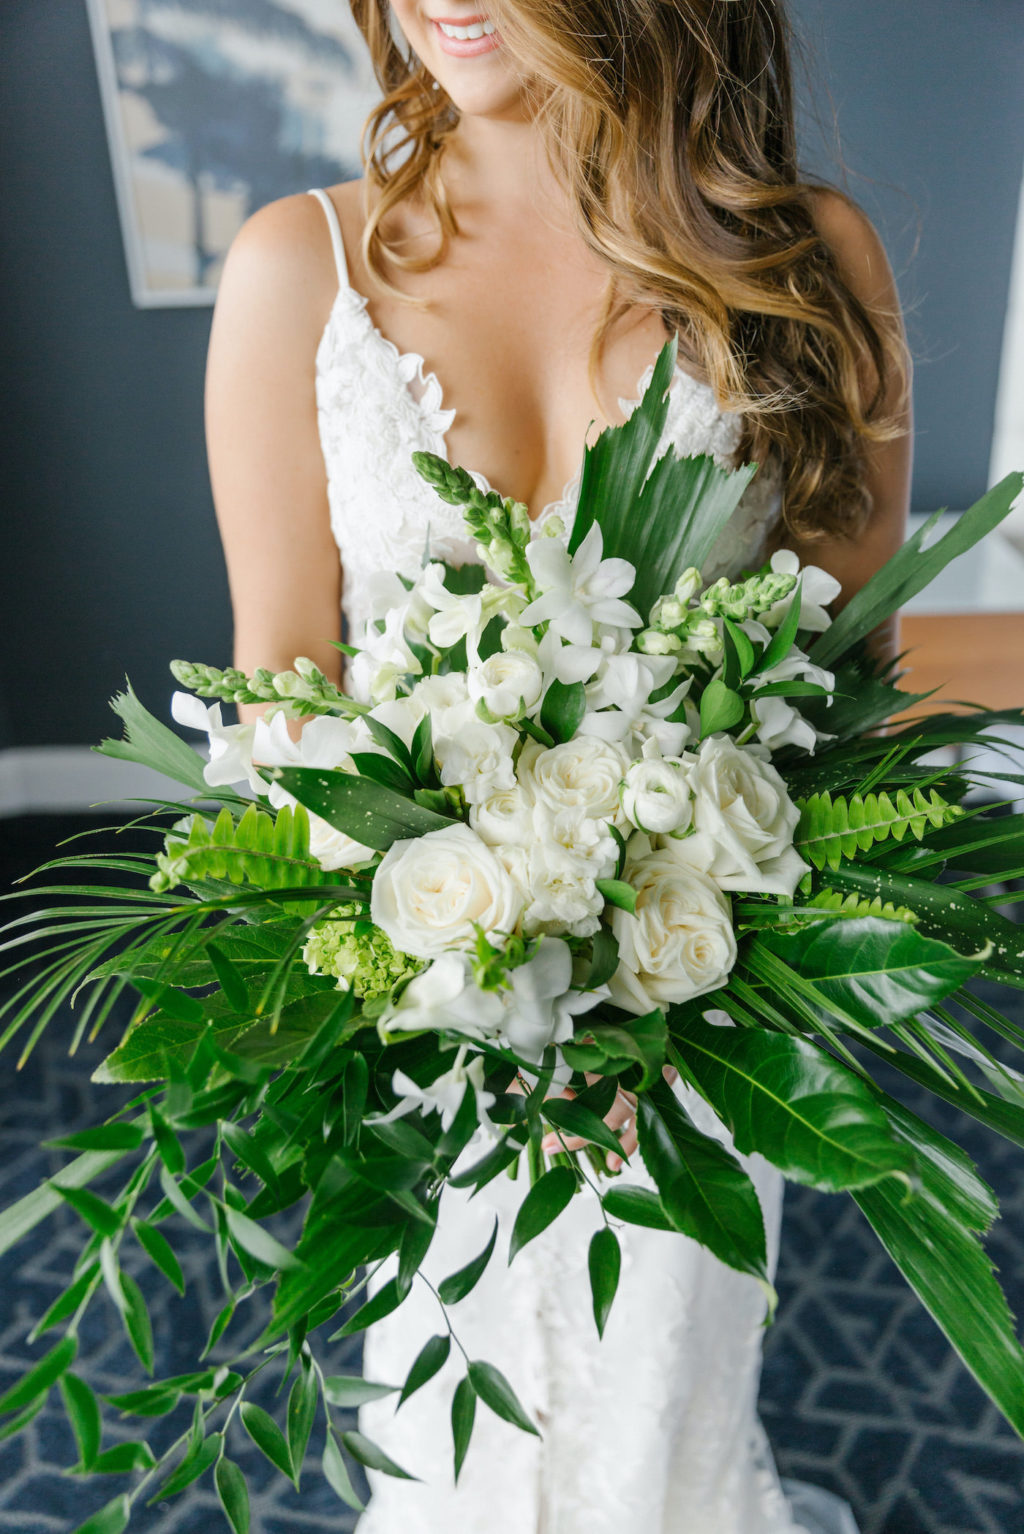 Tampa Wedding Florist Bruce Wayne Florals   Florida Tropical Wedding Bridal Bouquet with Greenery Palm Fronds and Ferns and White Roses Orchids and Snapdragons